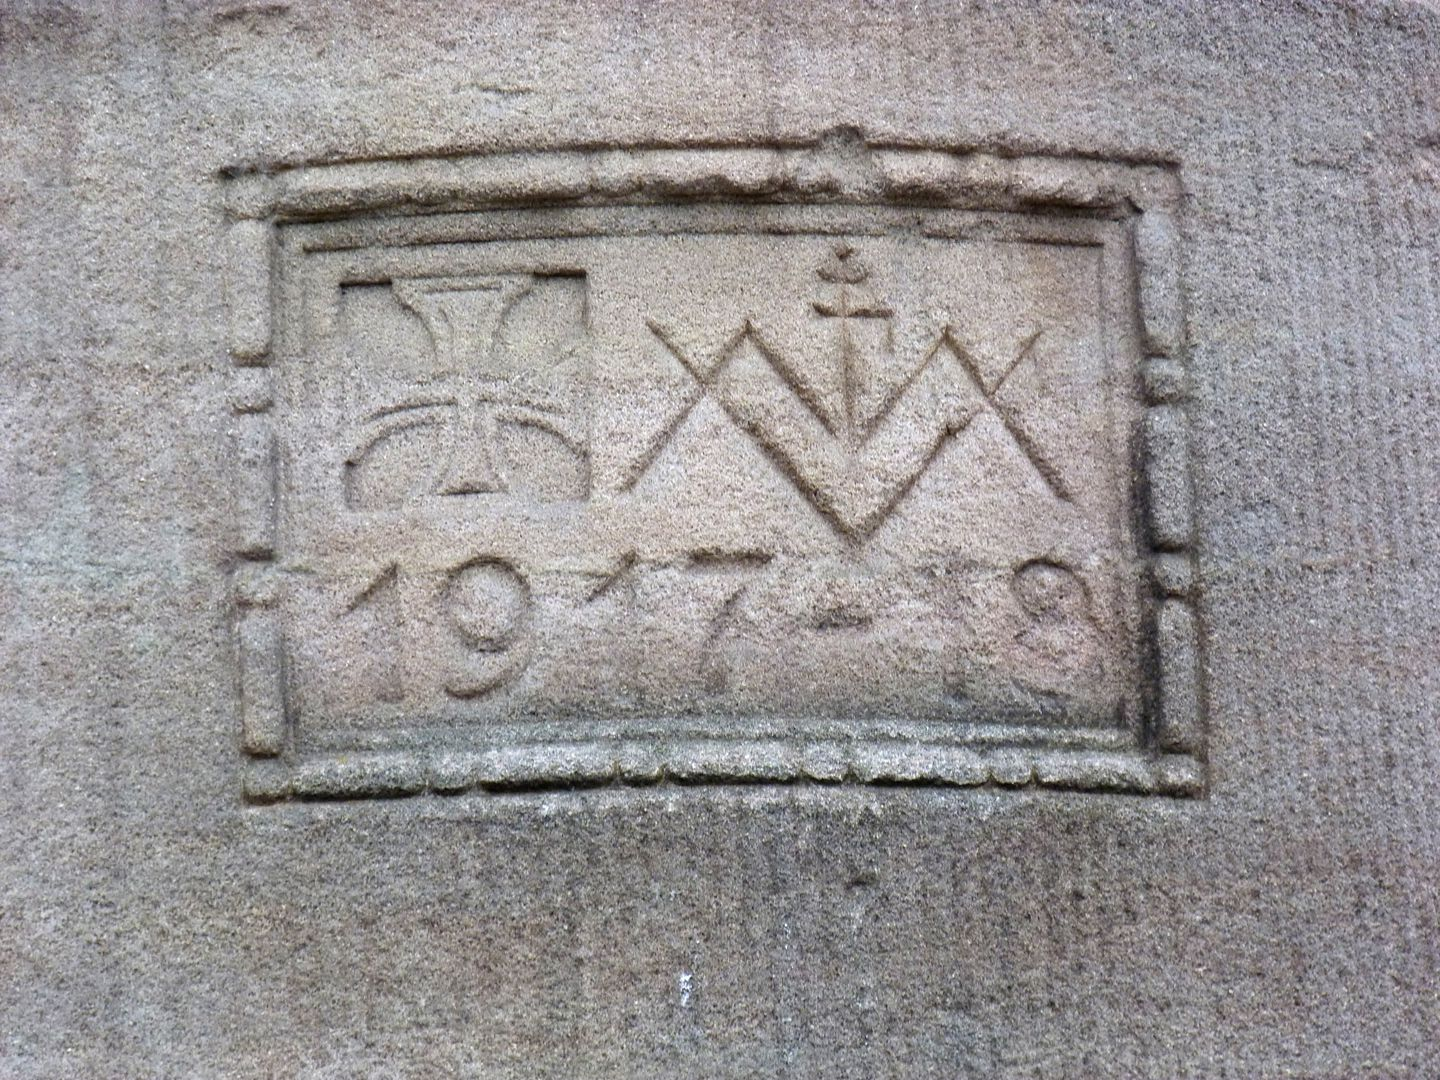 Administration building of Neumeyer Ltd. Stone mason´s mark with date